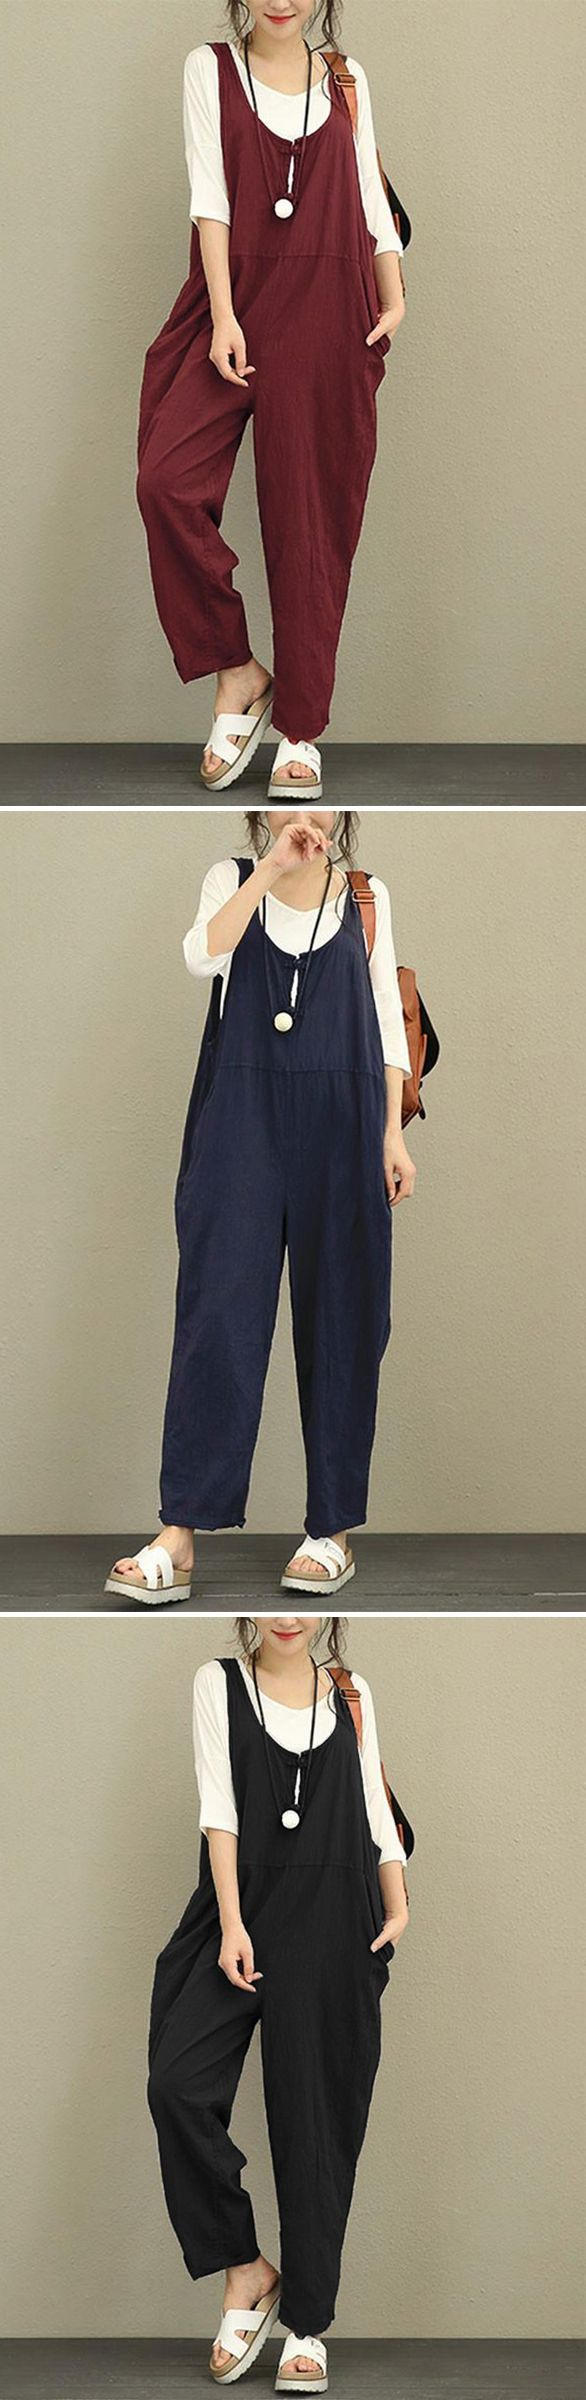 [Newchic Online Shopping] 46%OFF Vintage Pure Color Women Jumpsuits